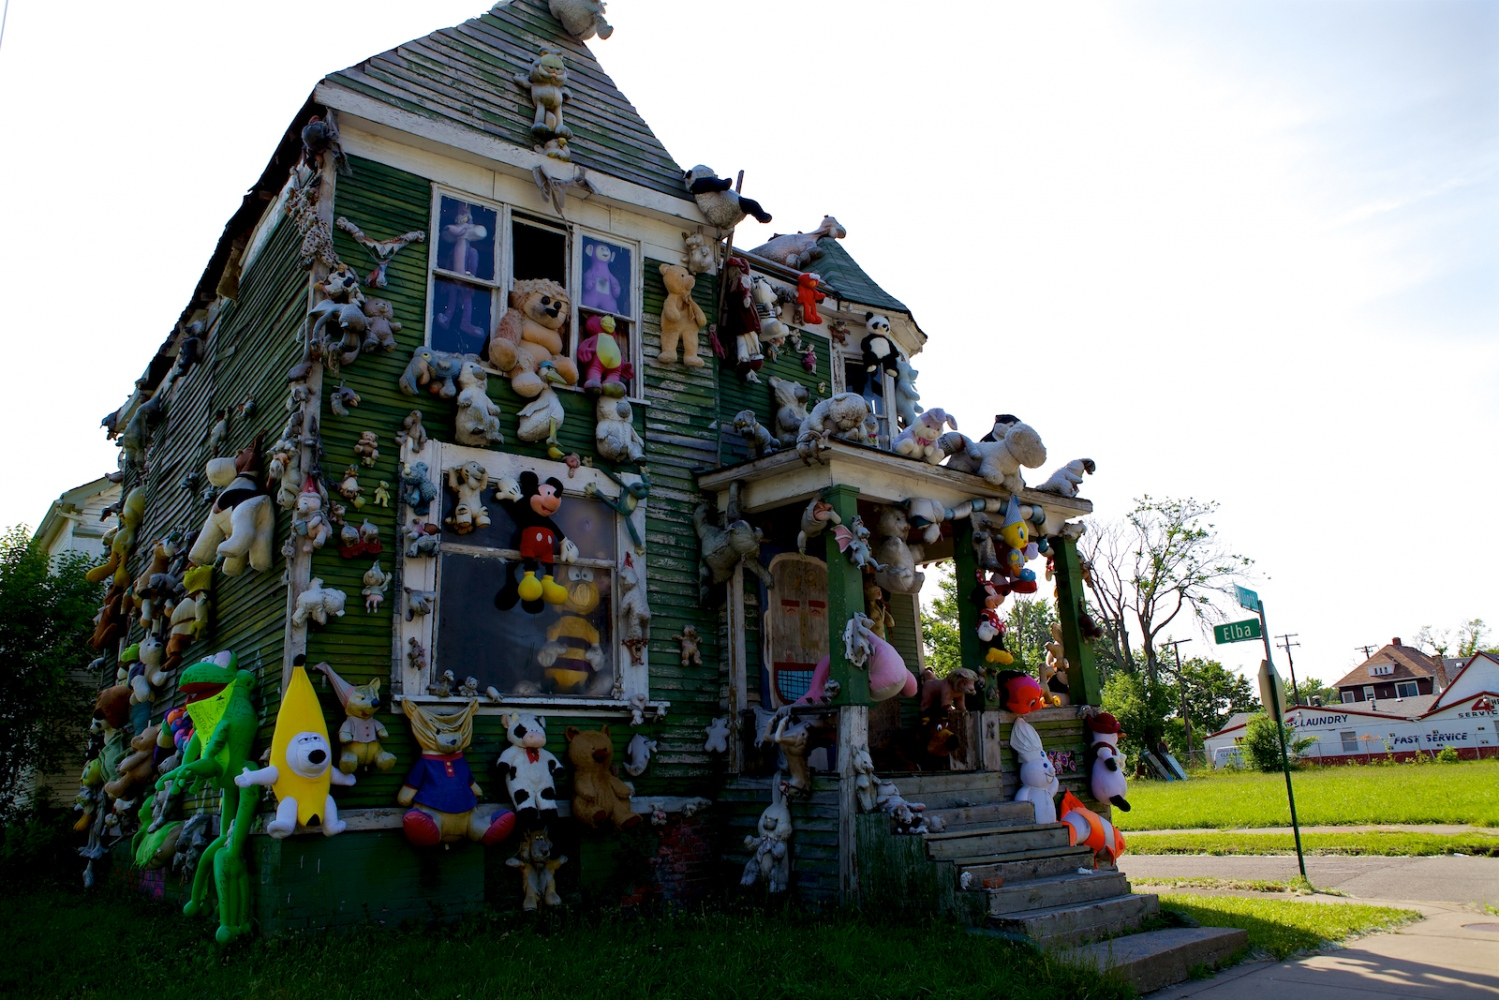 Teddy Bear House. Detroit, Michigan, June 2011